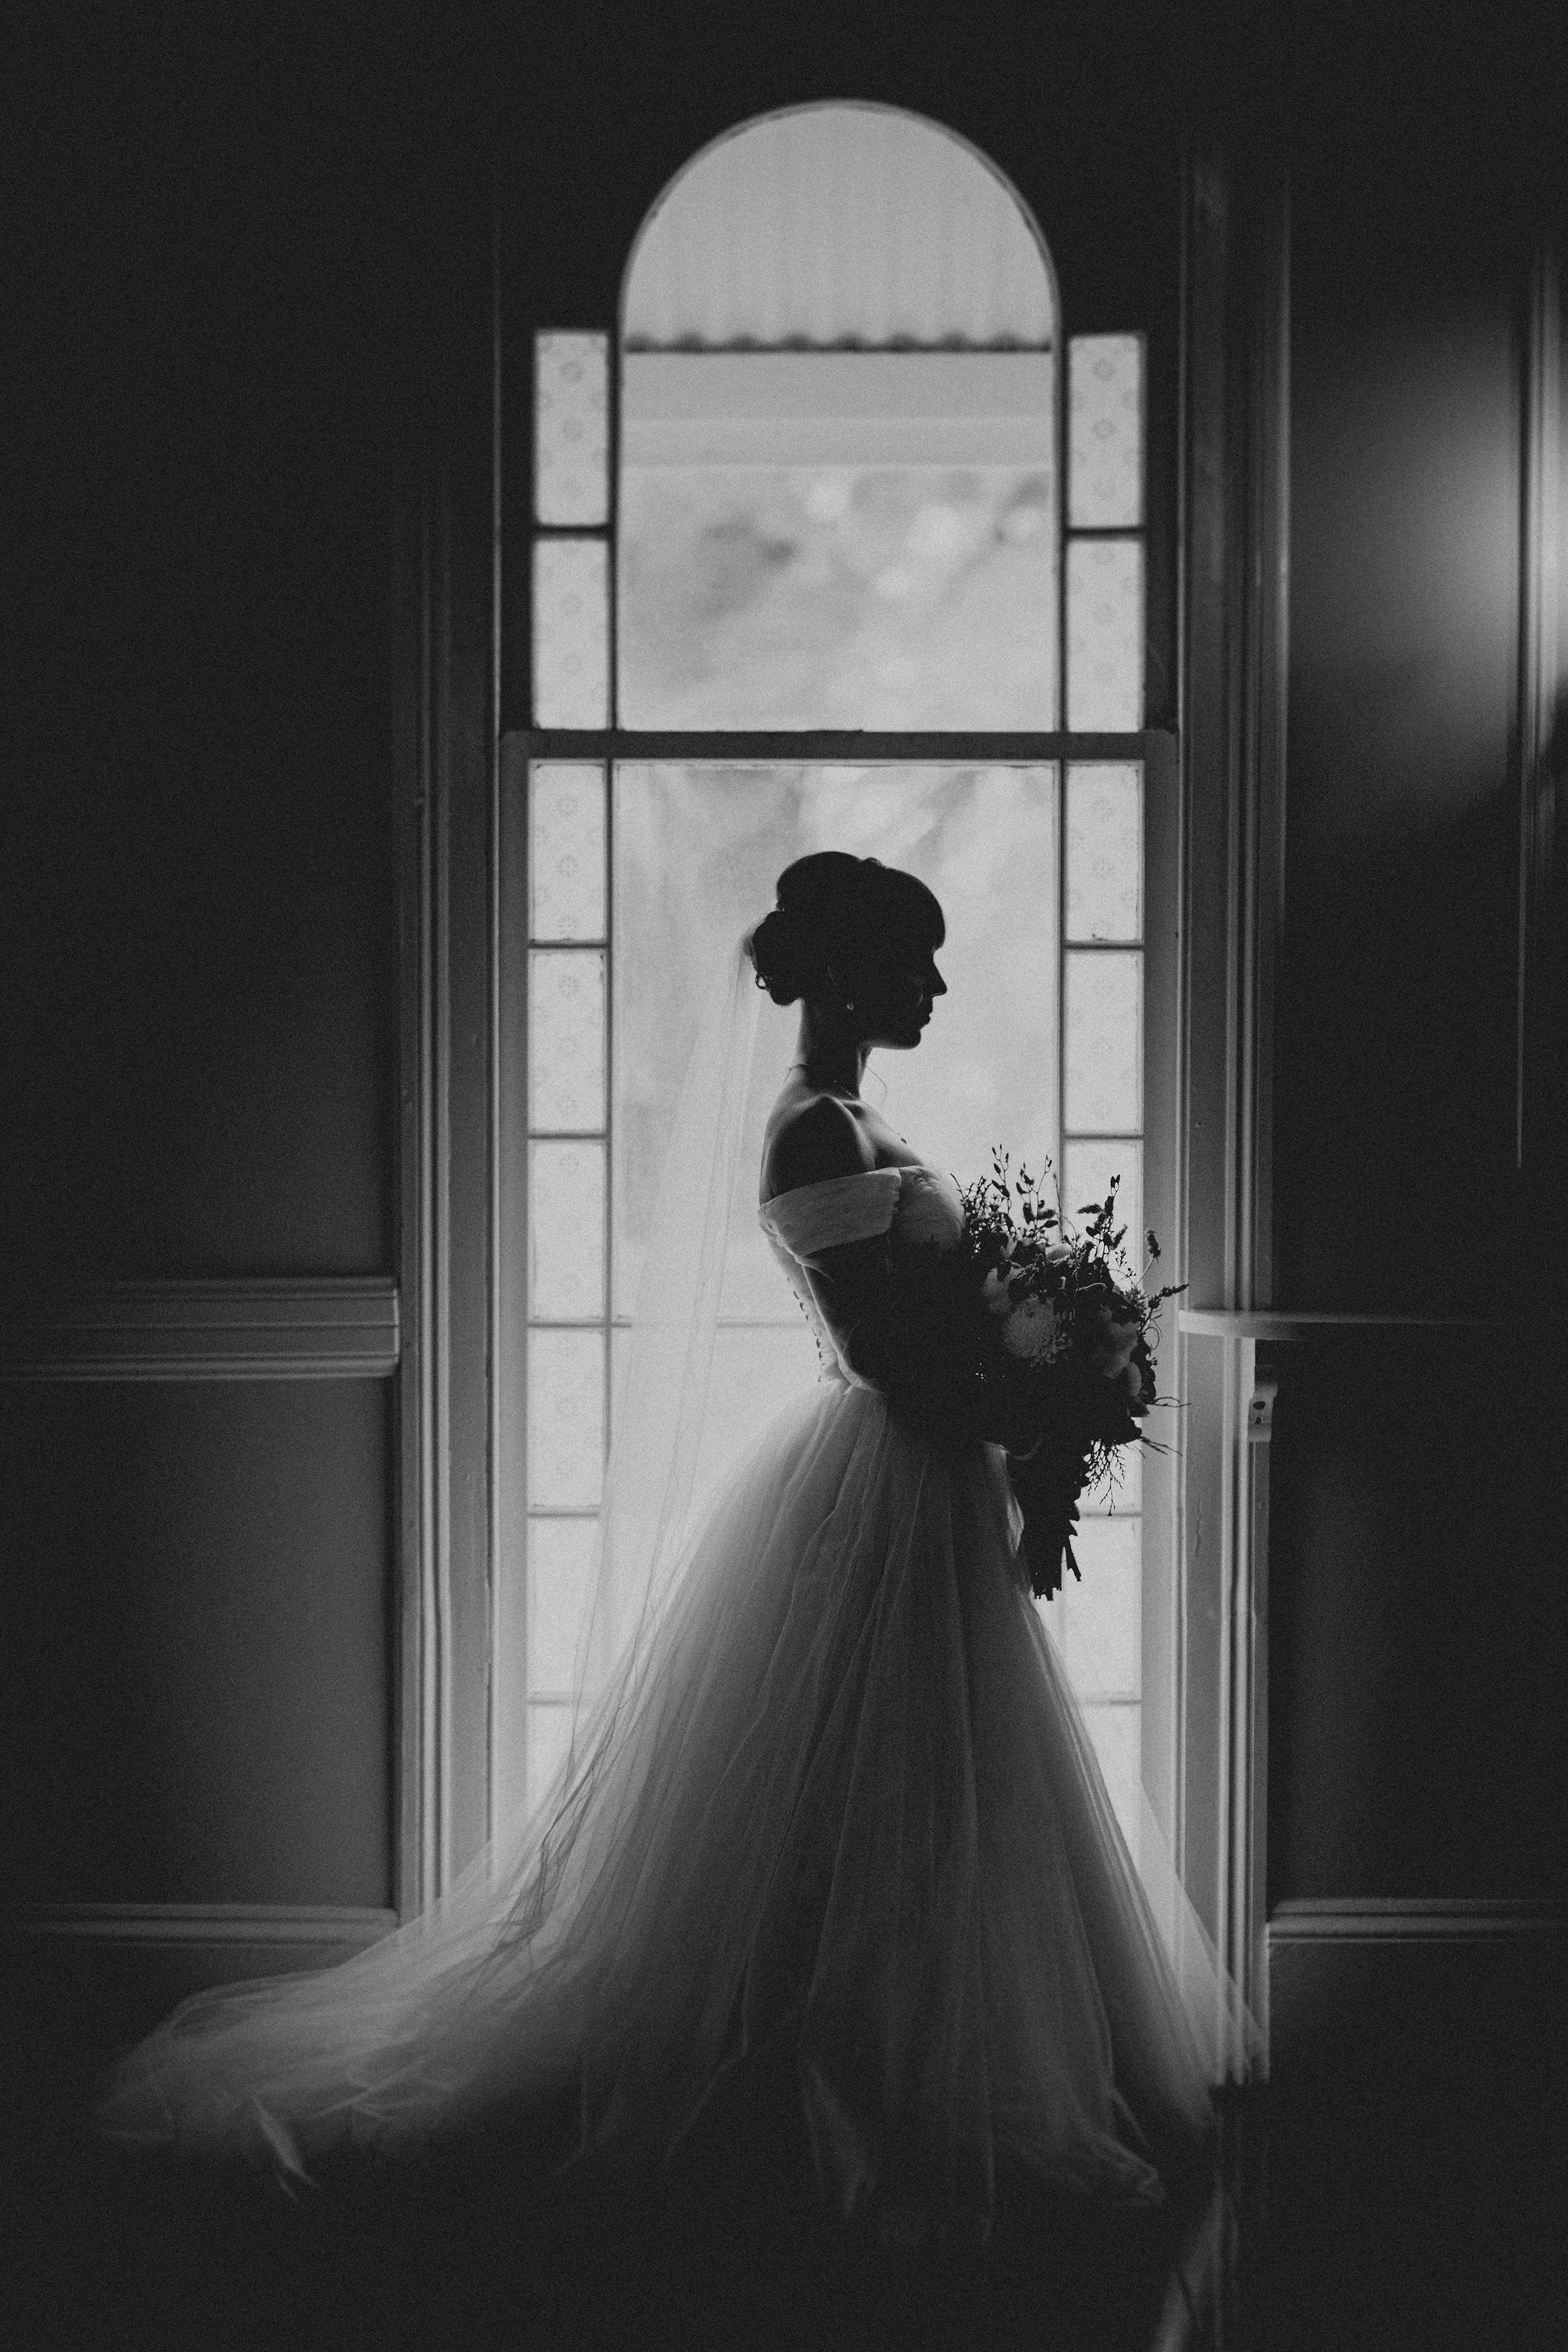 Silhouette of bride in wedding dress with bouquet posing in front of a narrow windowsill